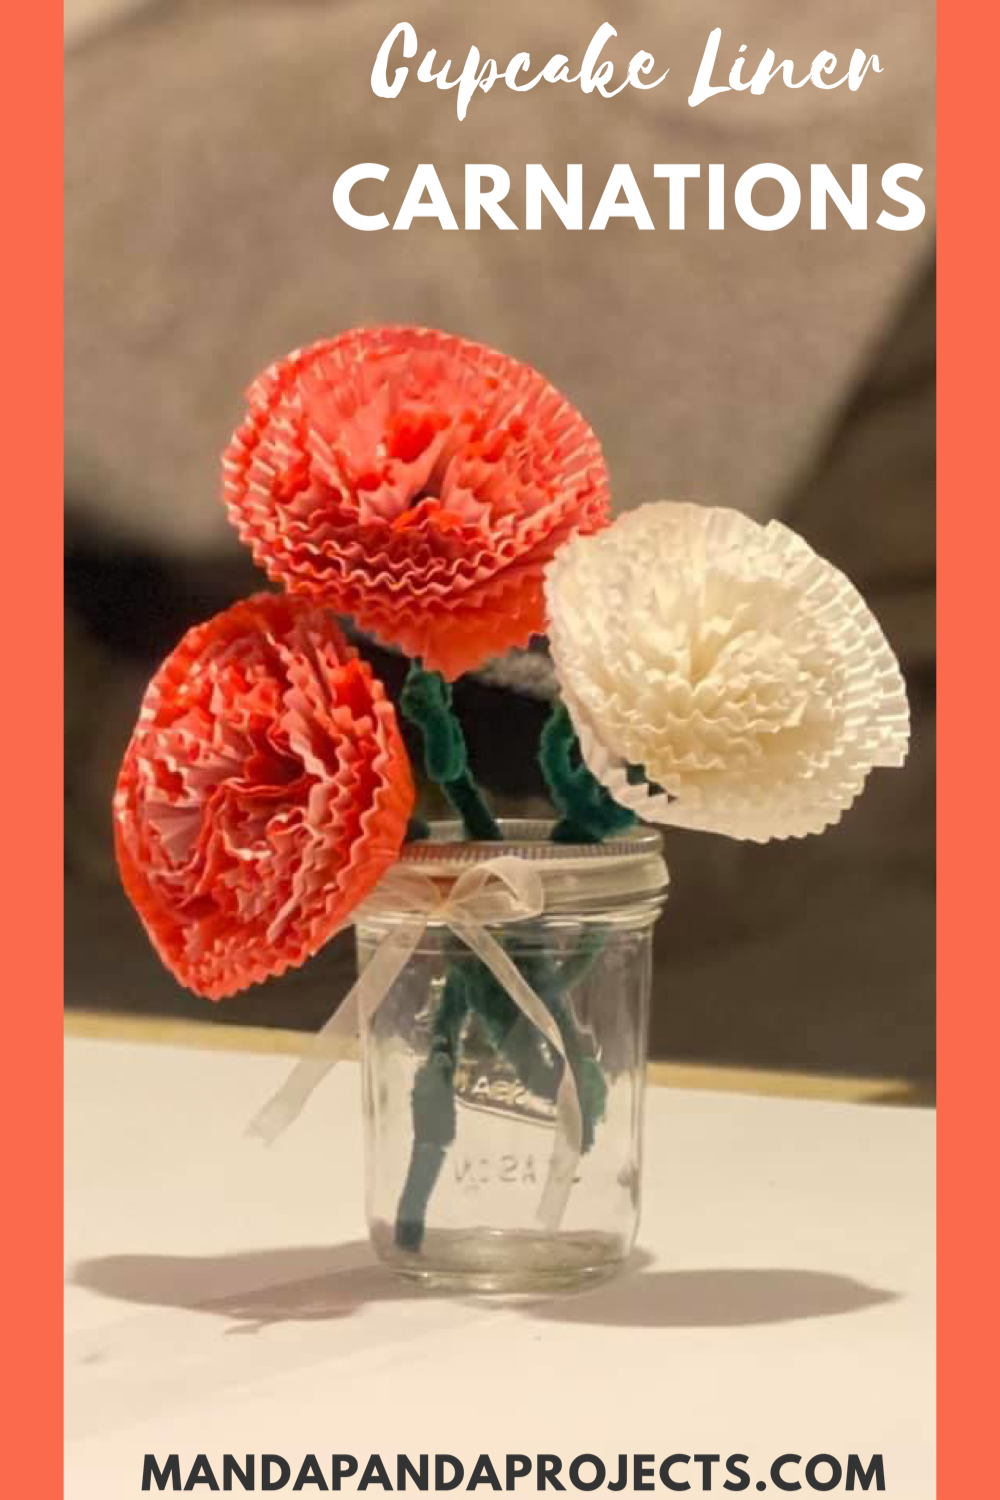 "These handmade flowers are the perfect gift for Mom this Mother's Day.  They are thoughtful, yet easy enough to make with things you already have in the house.  The best part is they will last forever.  Cupcake liner Carnations are the perfect way for the Kids to say ""I Love You"" to Mama! #mothersday #mothersdaycrafts #mothersdaycraftsforkids #mothersdaygifts #mothersdaygiftideas #mothersdaycraftiness #diymothersdaygifts #diyflowers #recycledcrafts #cupcakeliners"